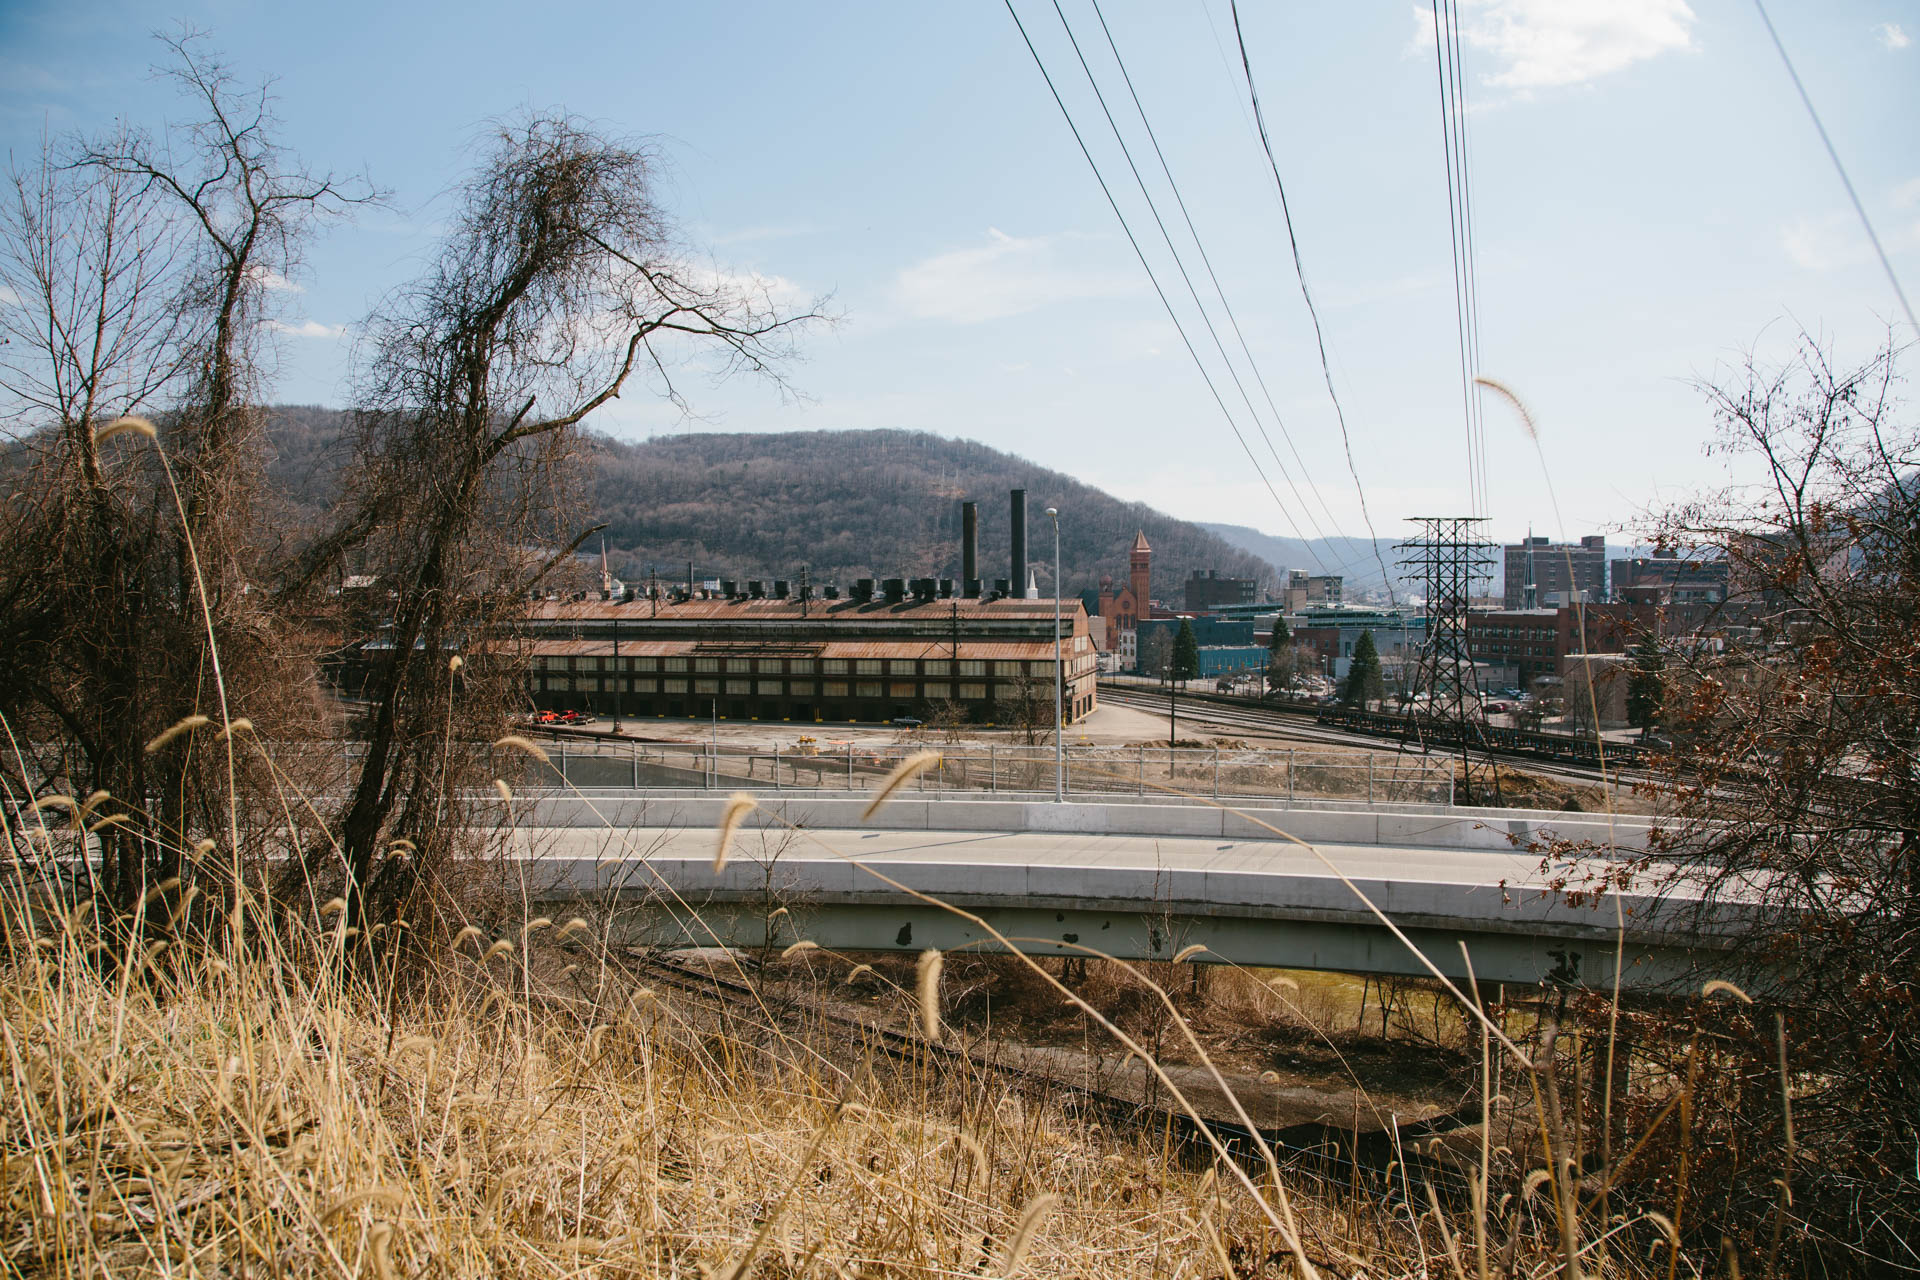 bethlehem-steel-hill-overlook-johnstown-pa-3484untitled